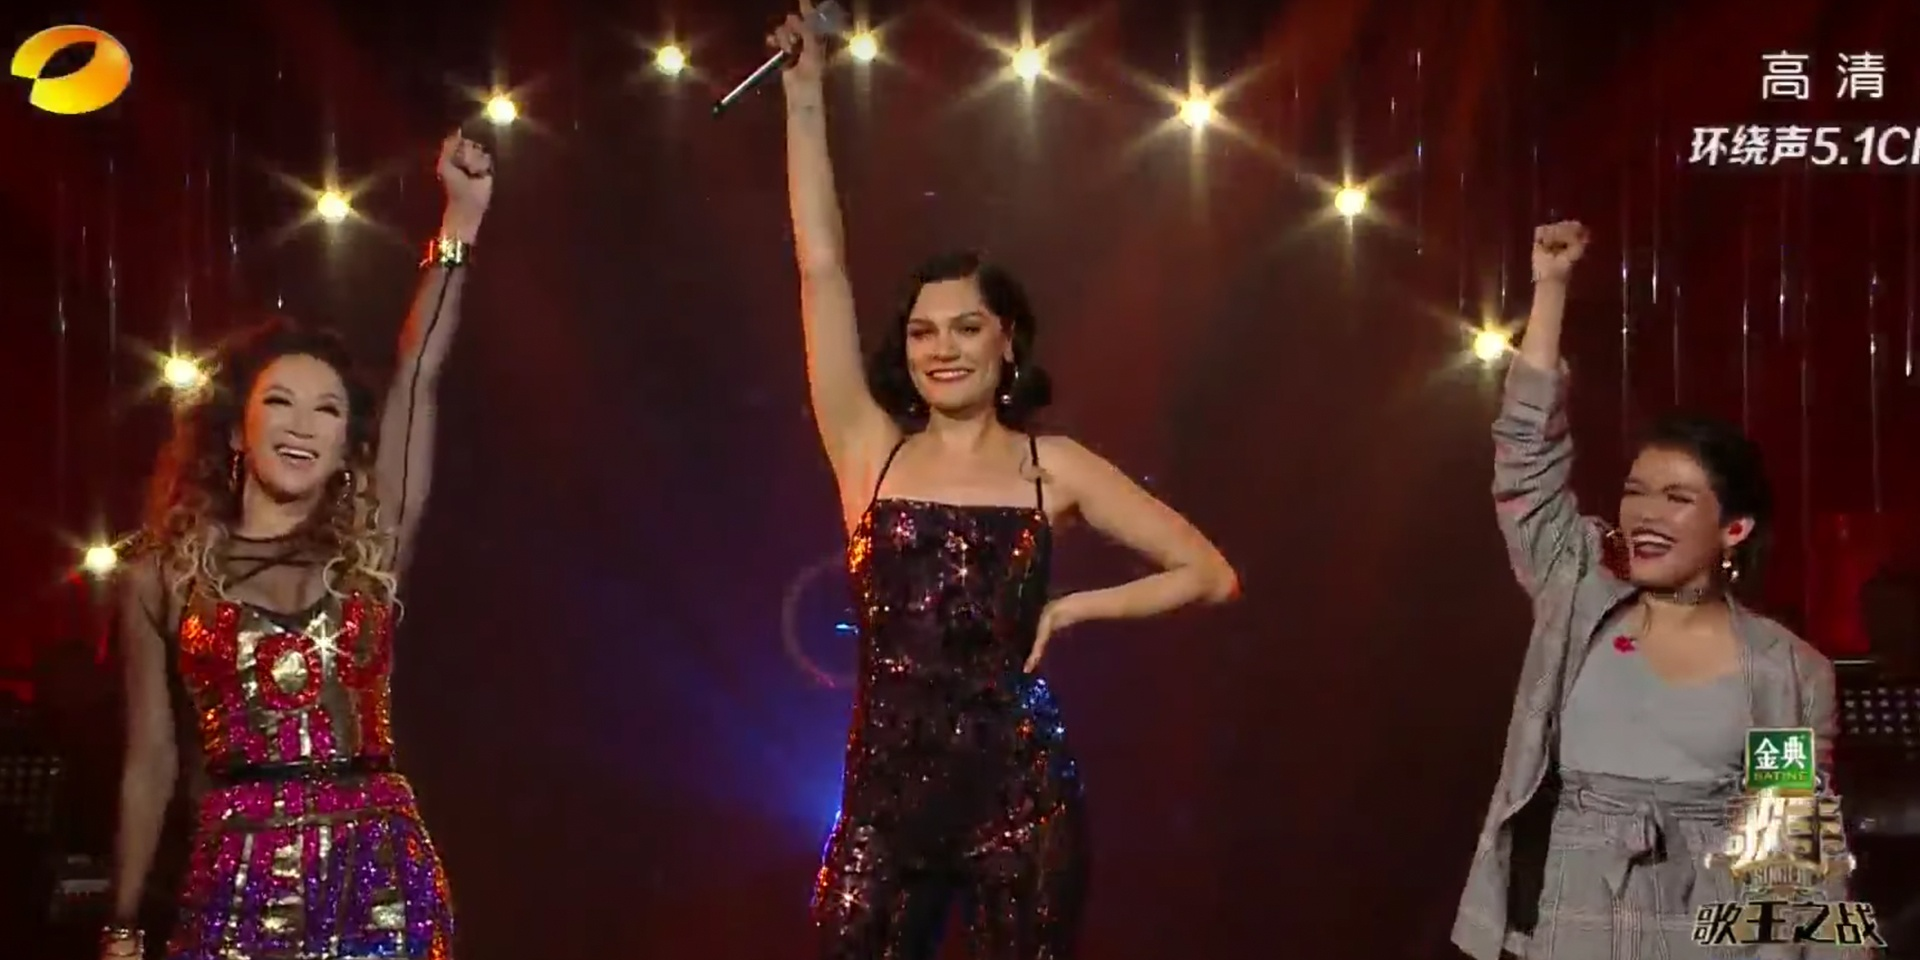 How Jessie J became the first Western singer to win Chinese talent competition Singer 2018